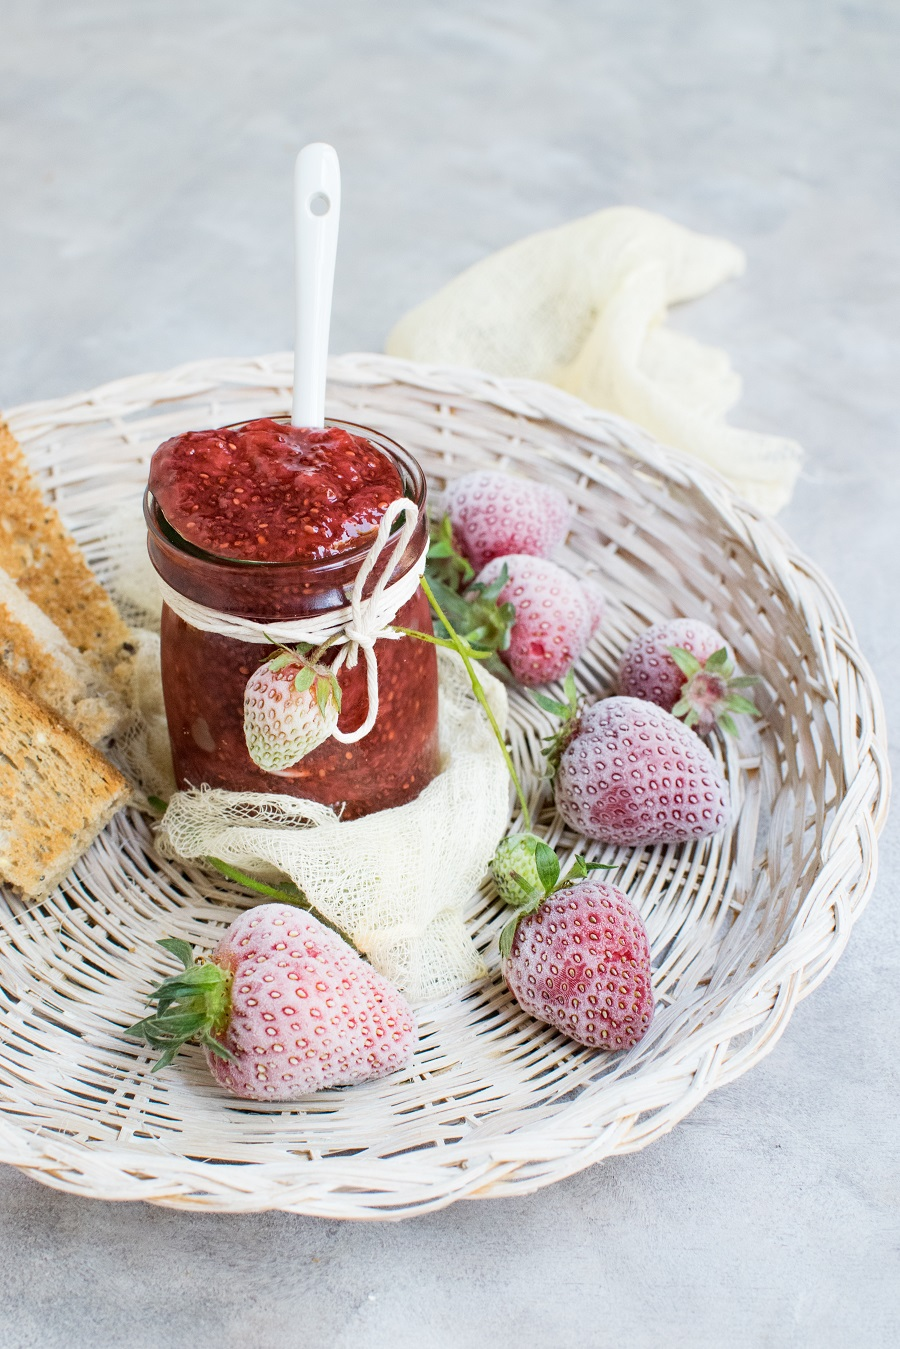 7 Homemade Jam Recipes